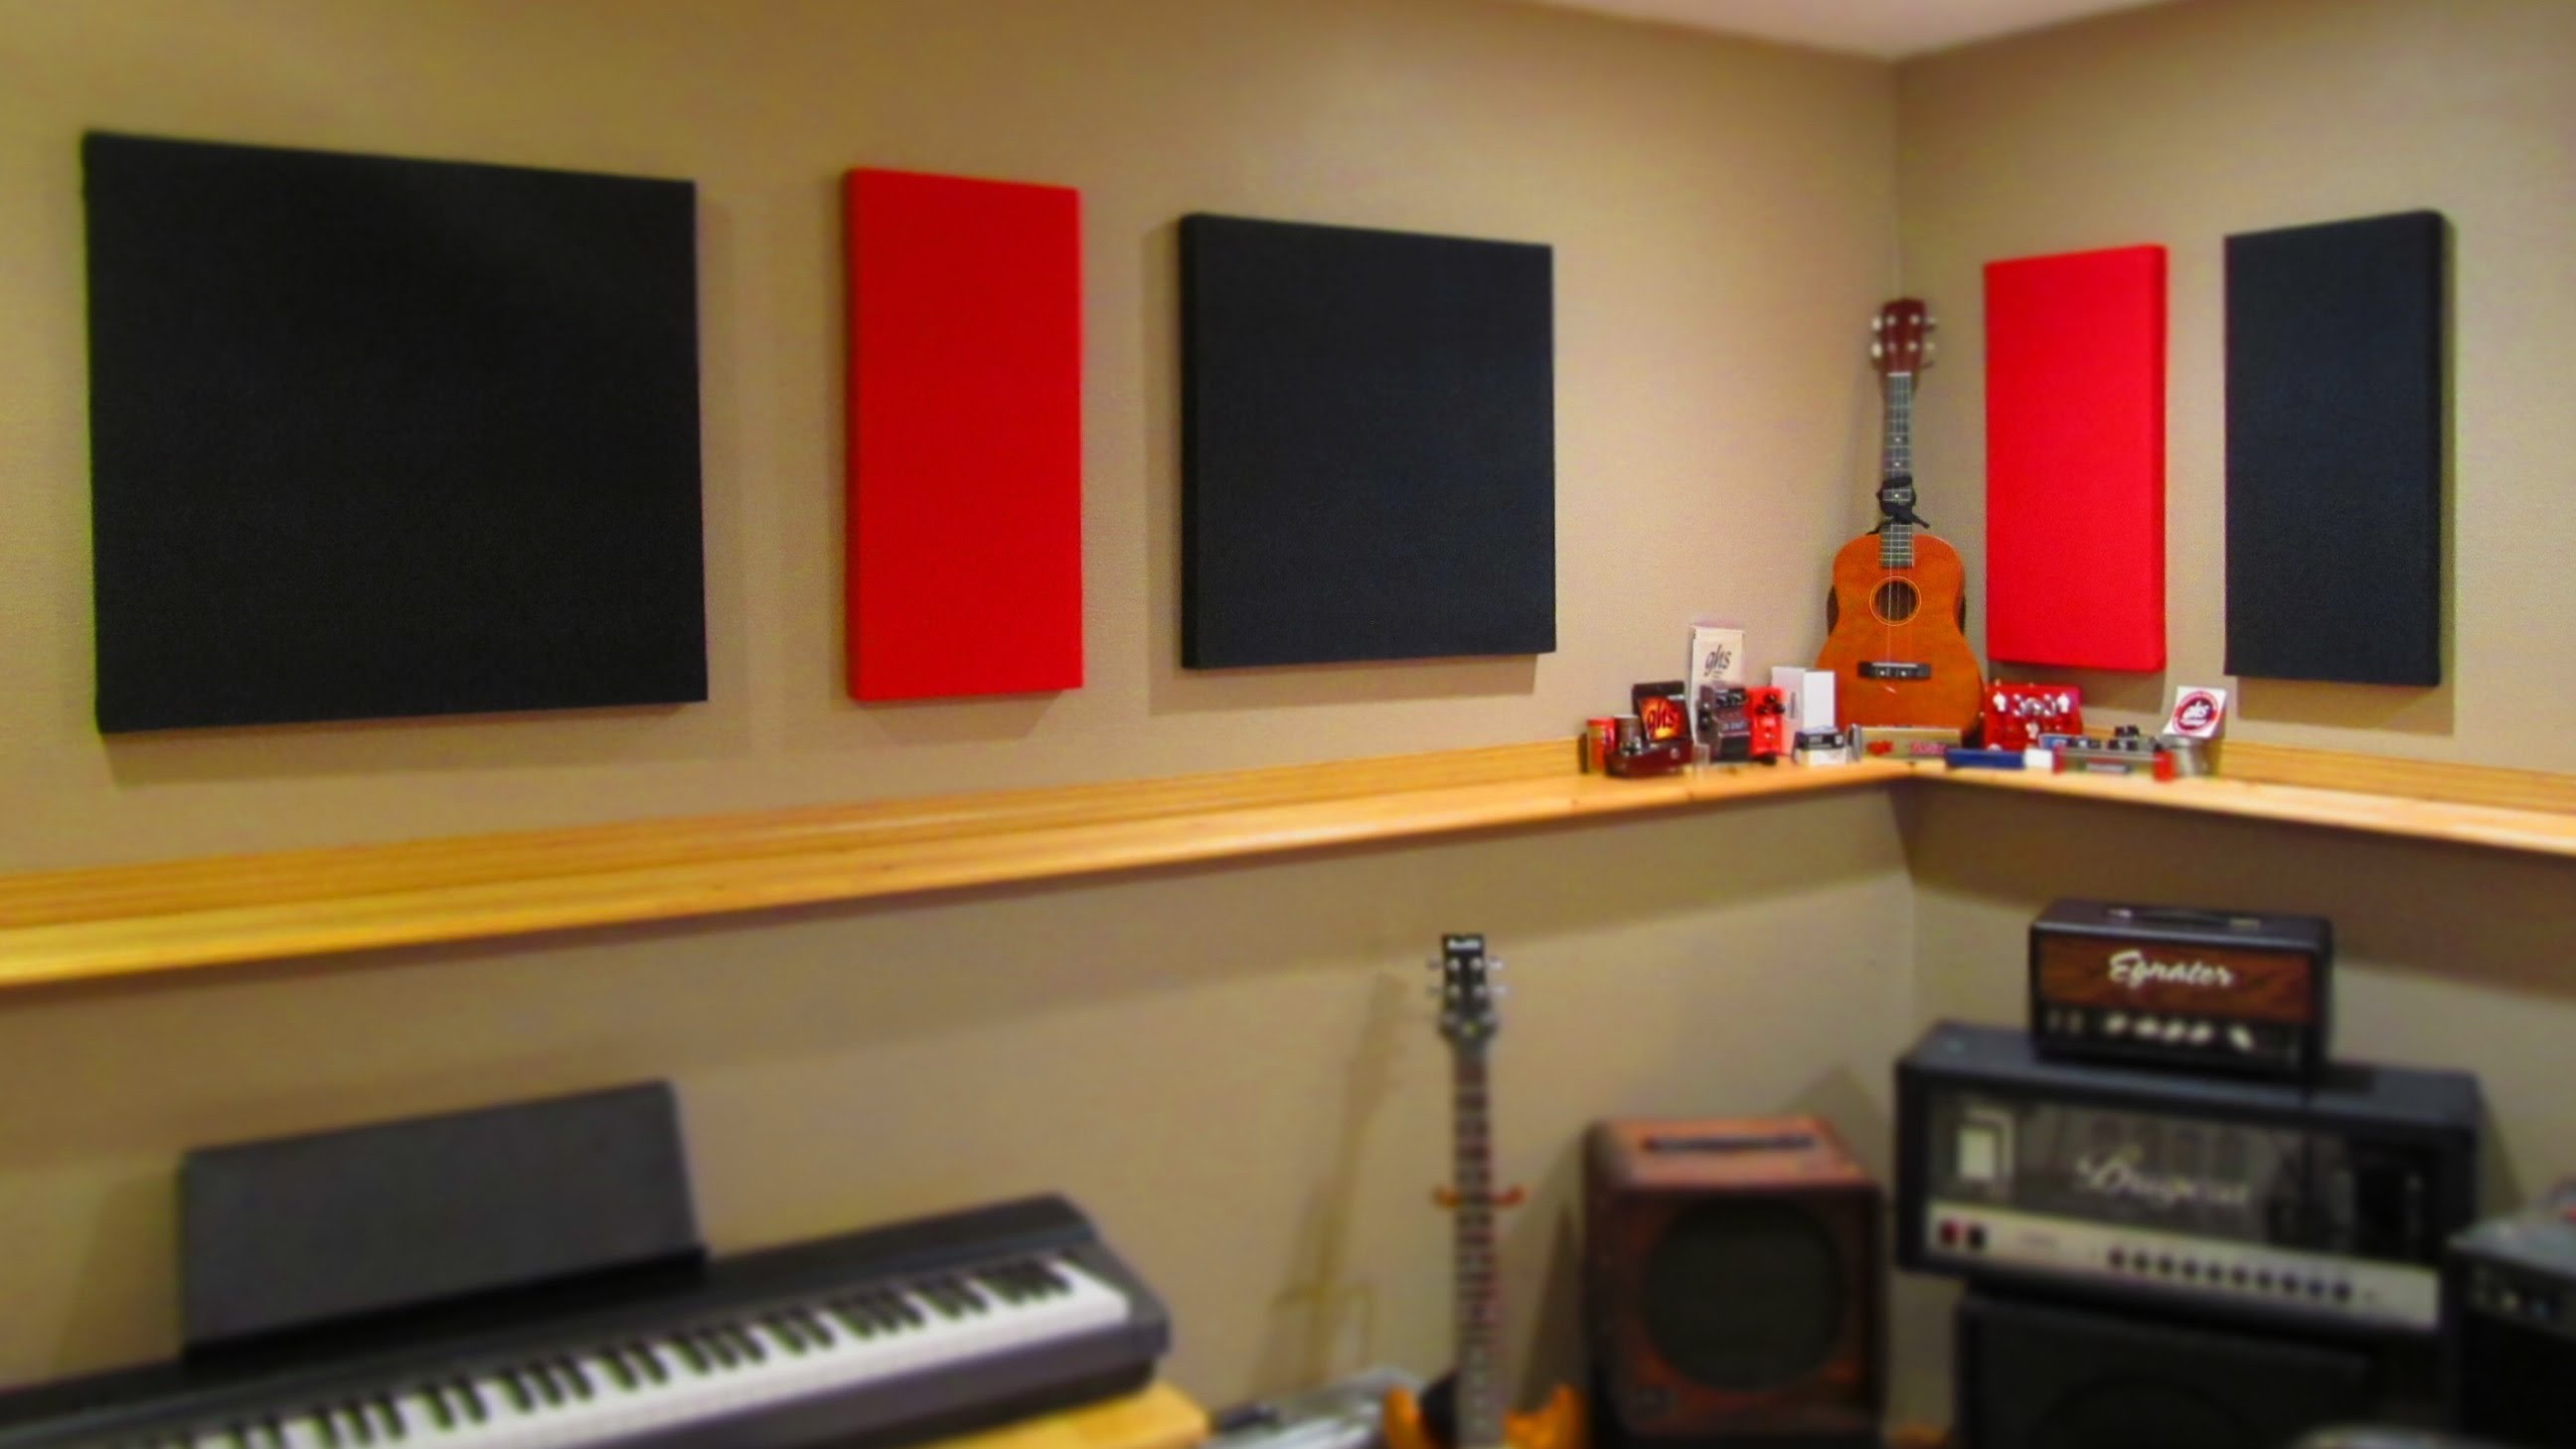 soundproofing an apartment soundproofing musical room with black red